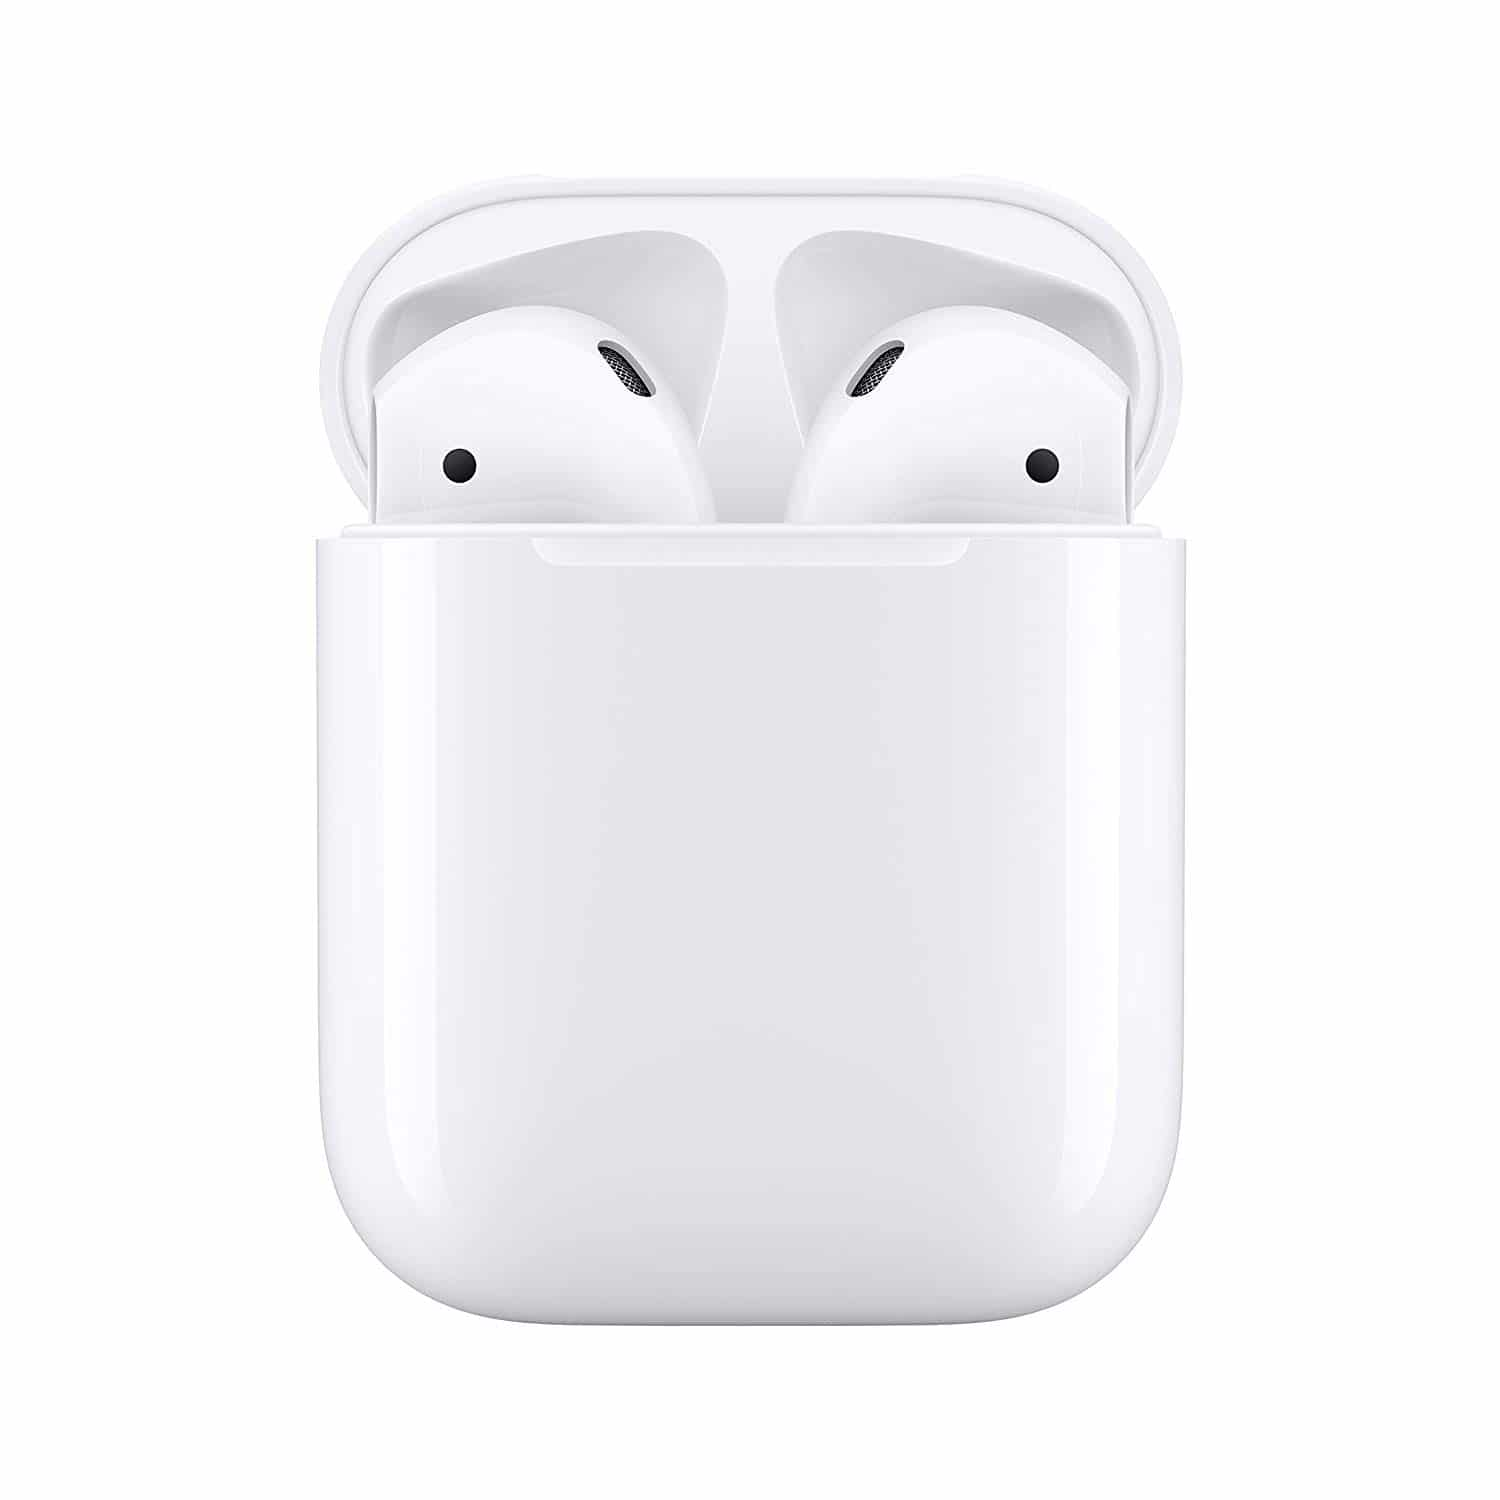 Apple AirPods with Charging Case: A Complete Review